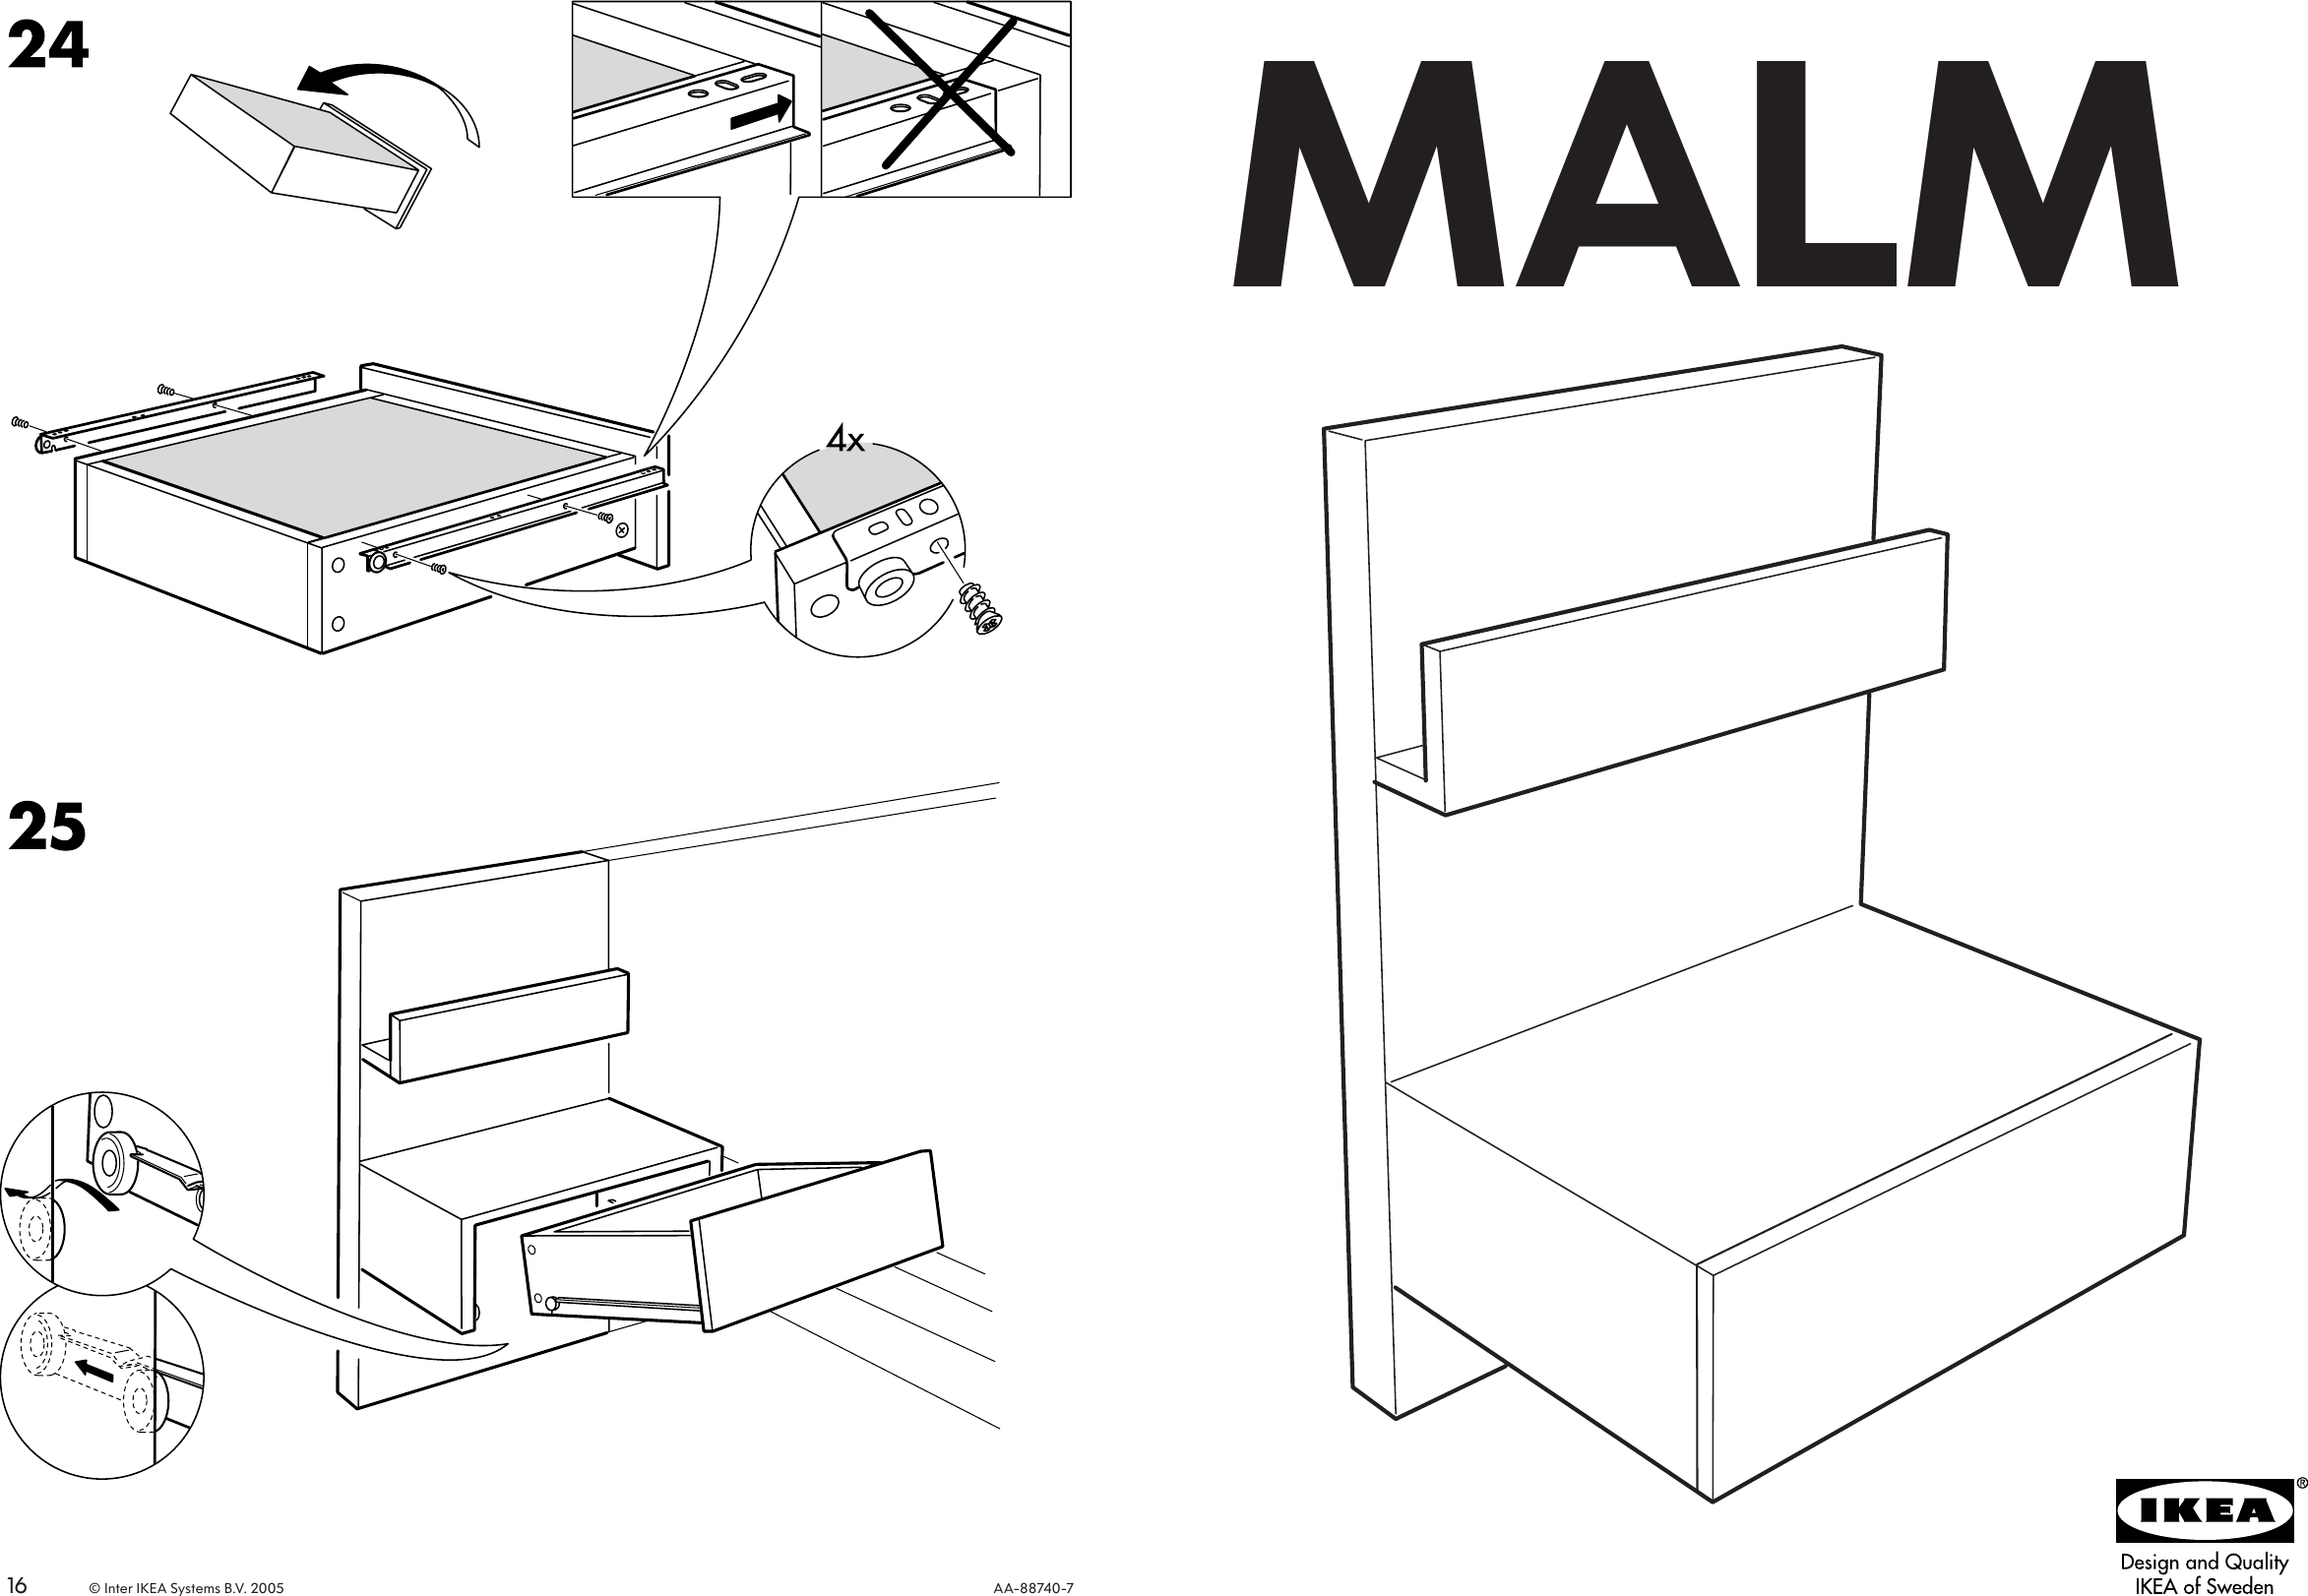 Ikea Malm Bedside Table 20x16 Assembly Instruction